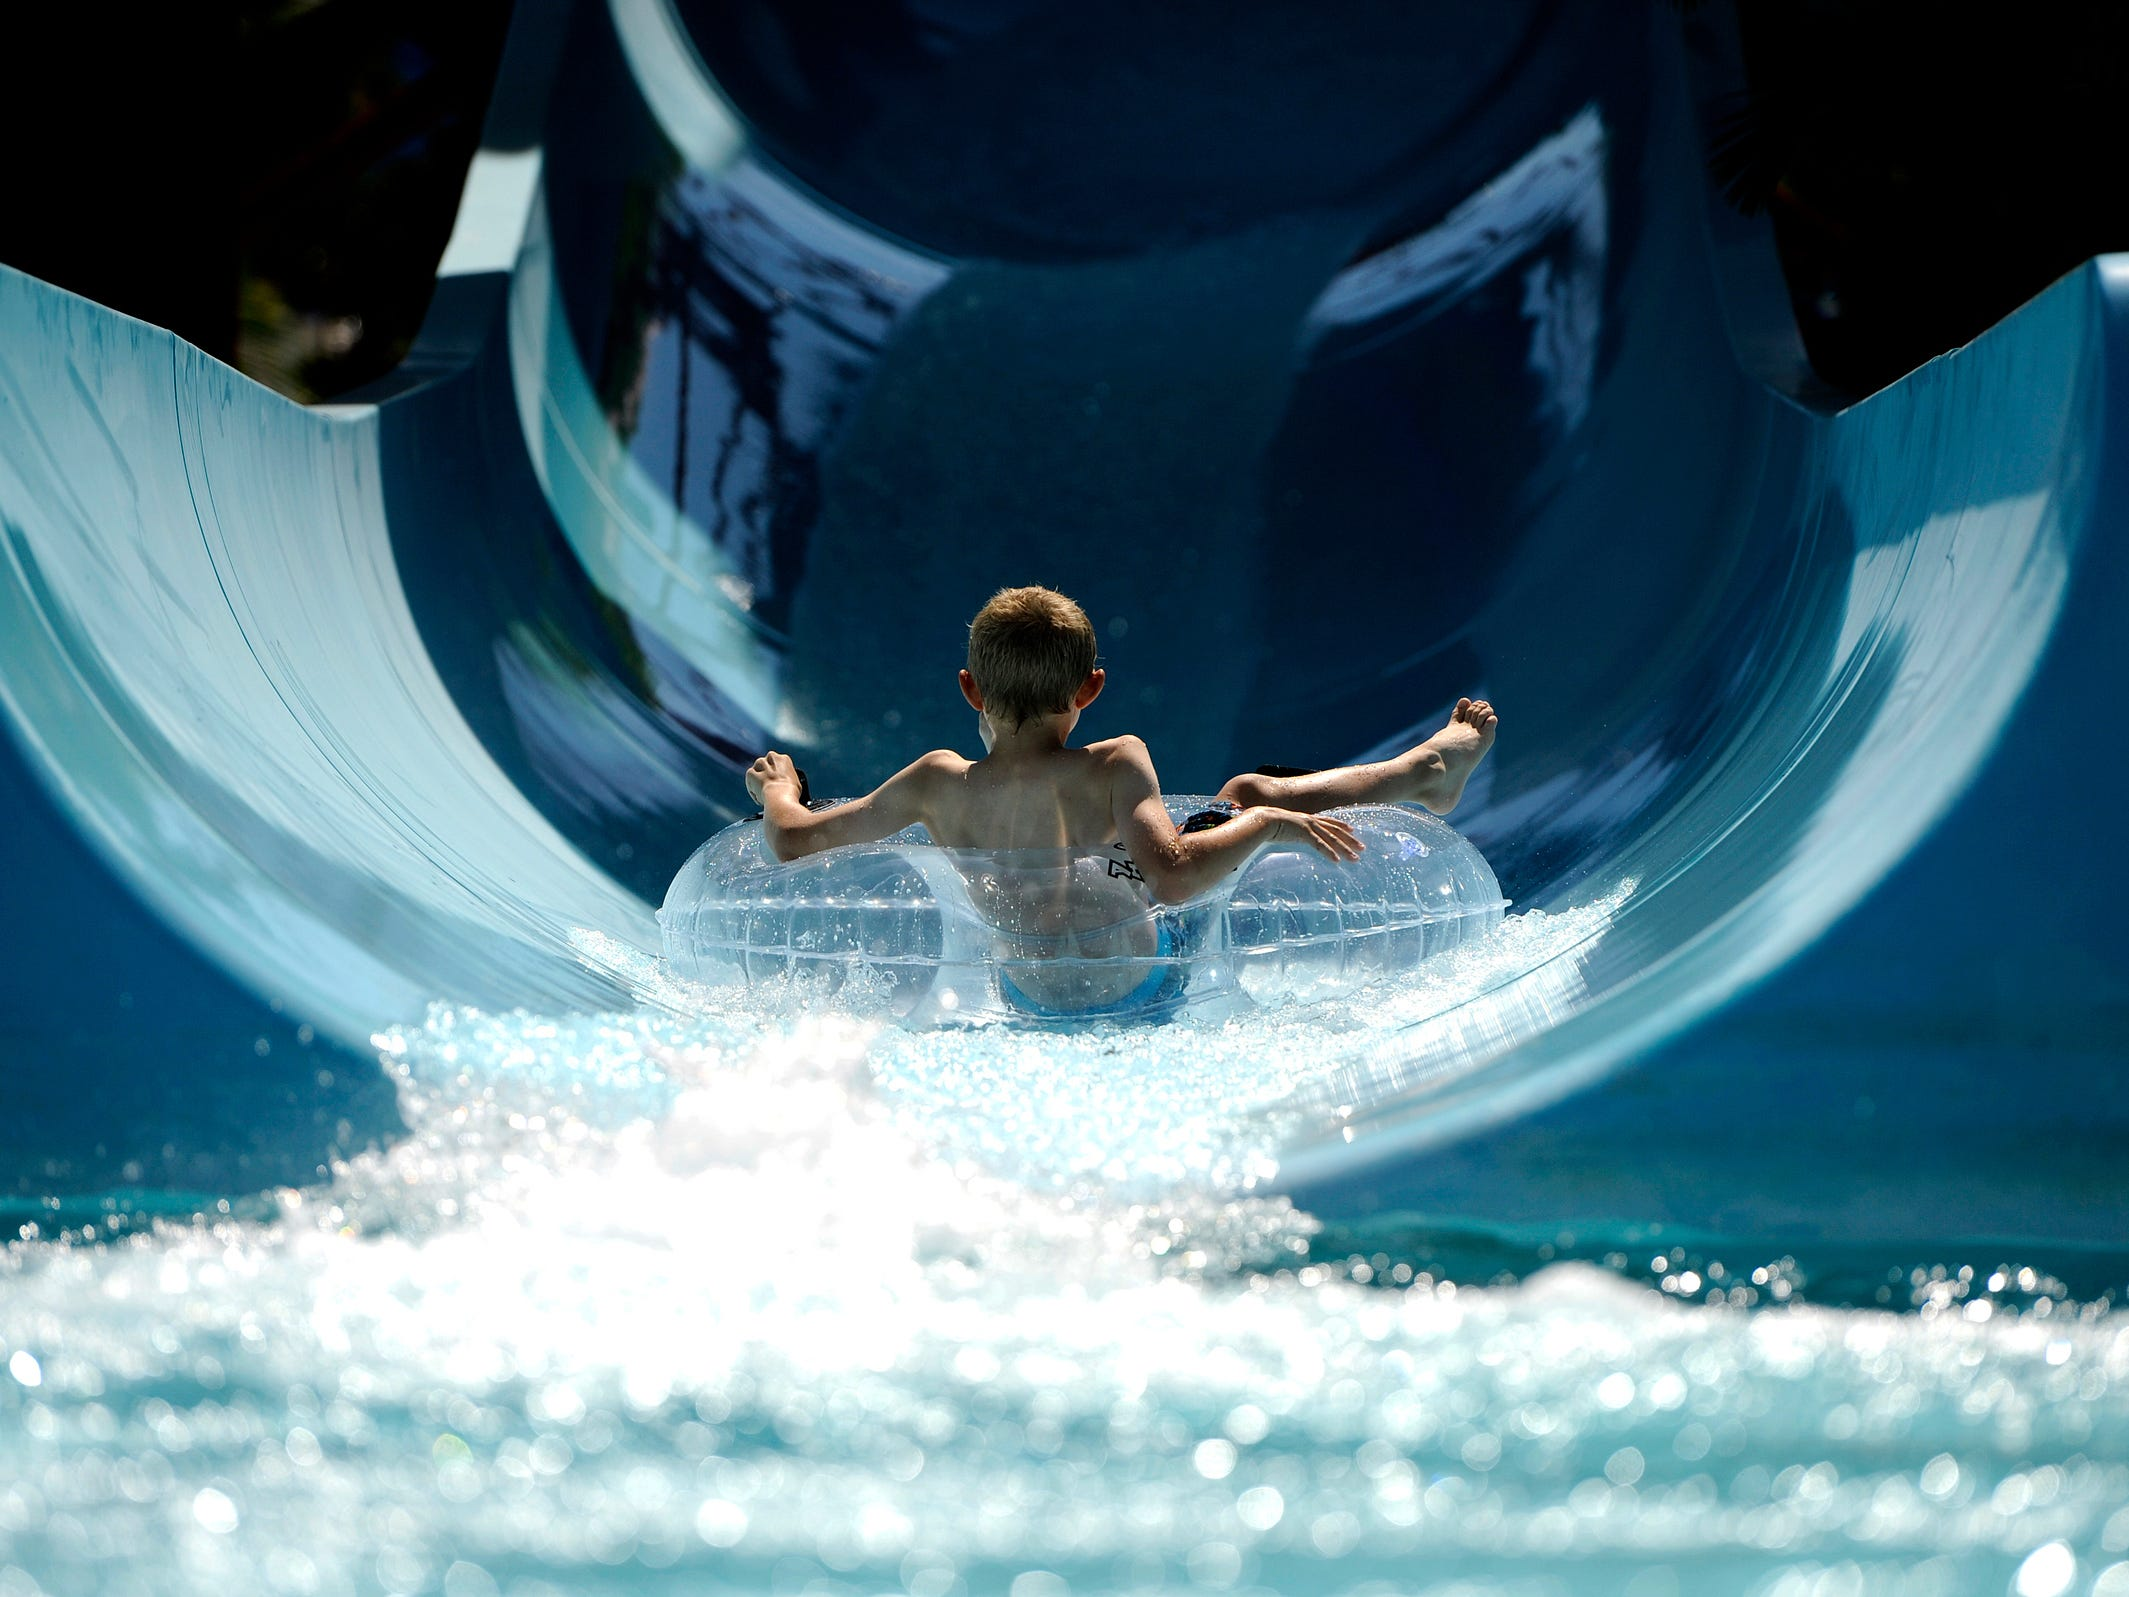 Open seasonally, Legoland Florida's water park features a wave pool, five water slides and the opportunity for guests to build their own Lego rafts.